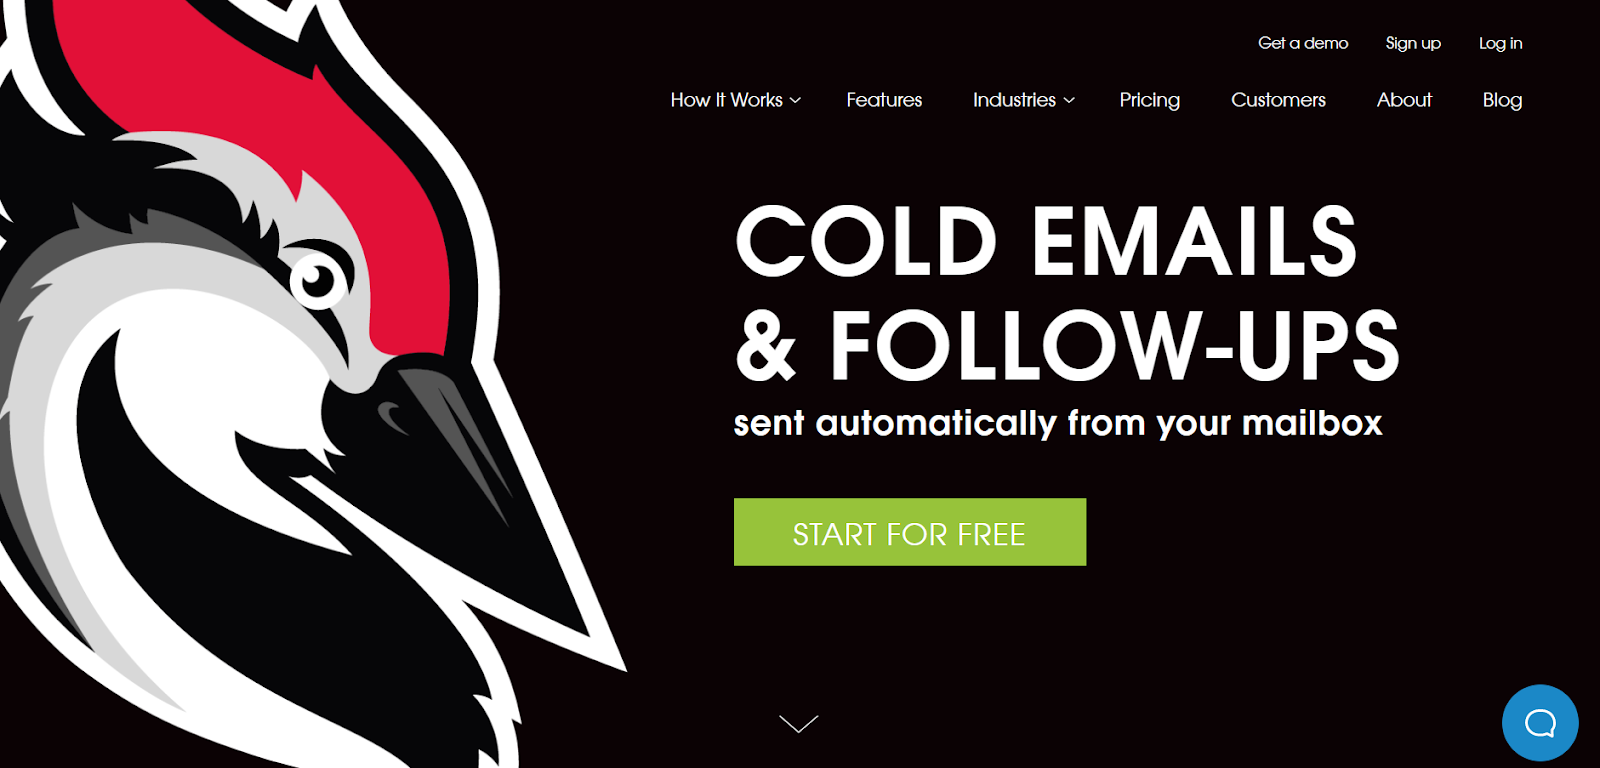 B2B marketing tools for sending mass cold emails